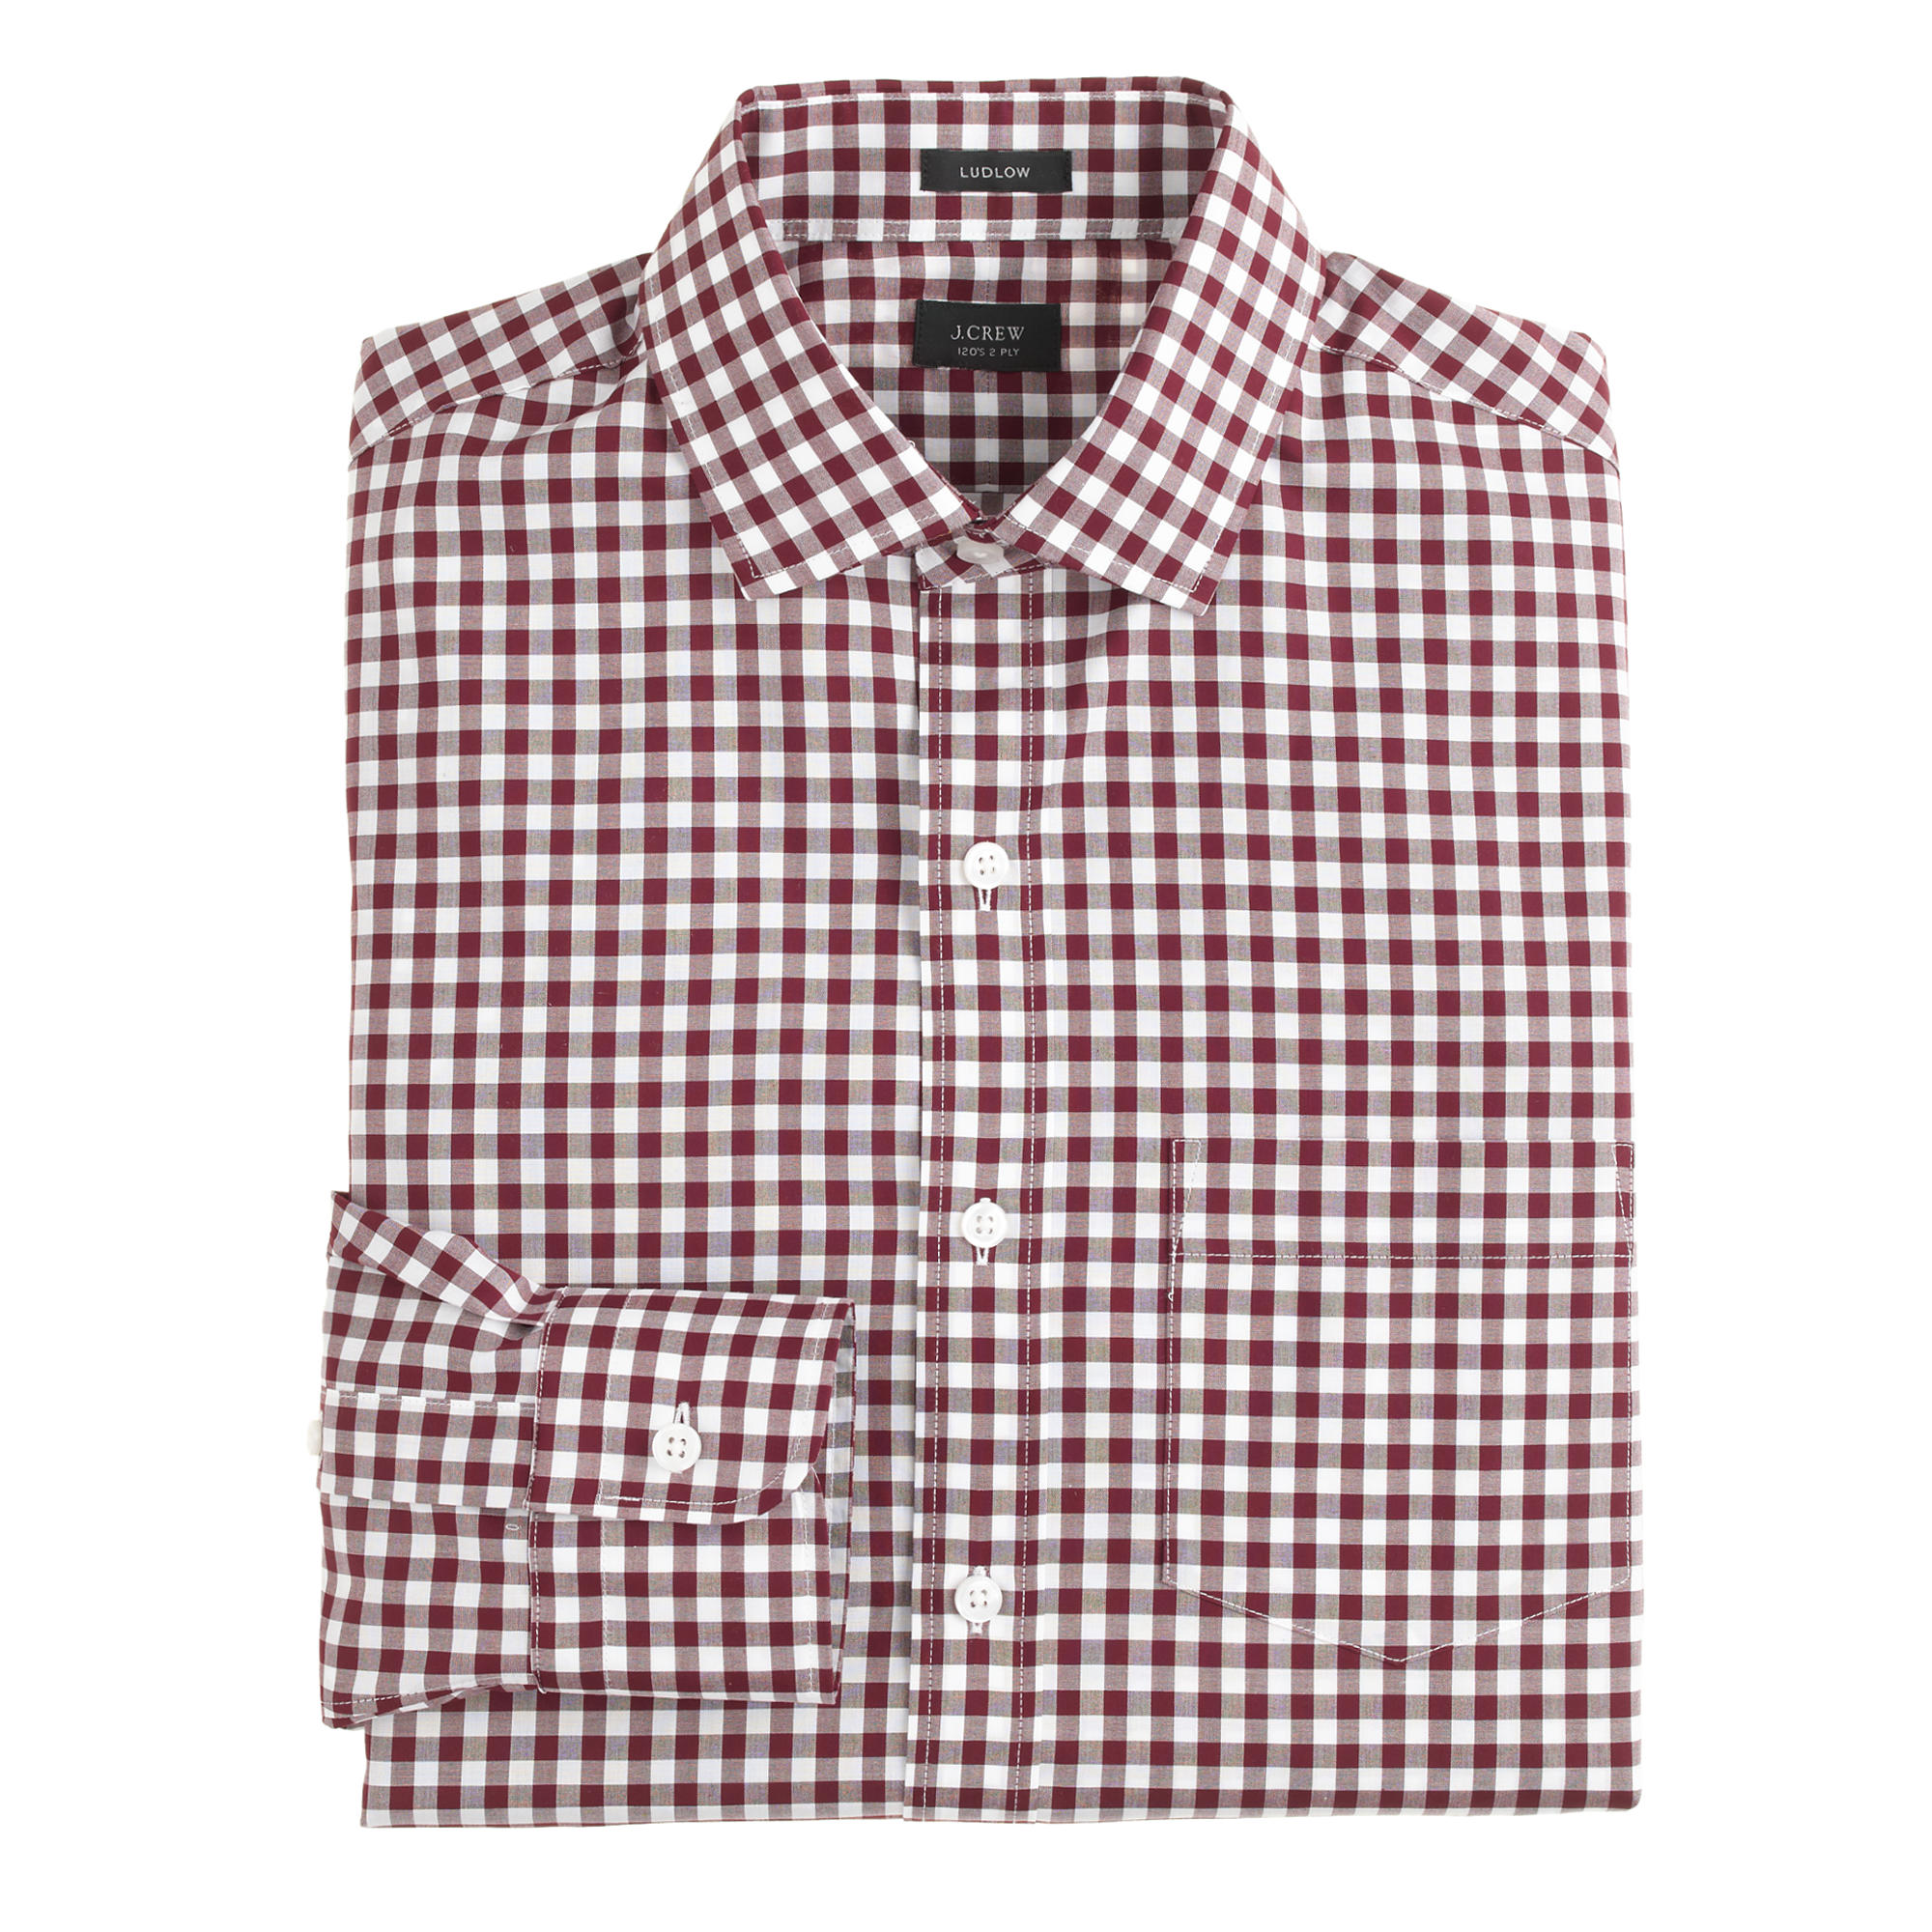 J.Crew Ludlow Spread-Collar Shirt in Burgundy Gingham | 10 Fall Wardrobe Essentials for Men